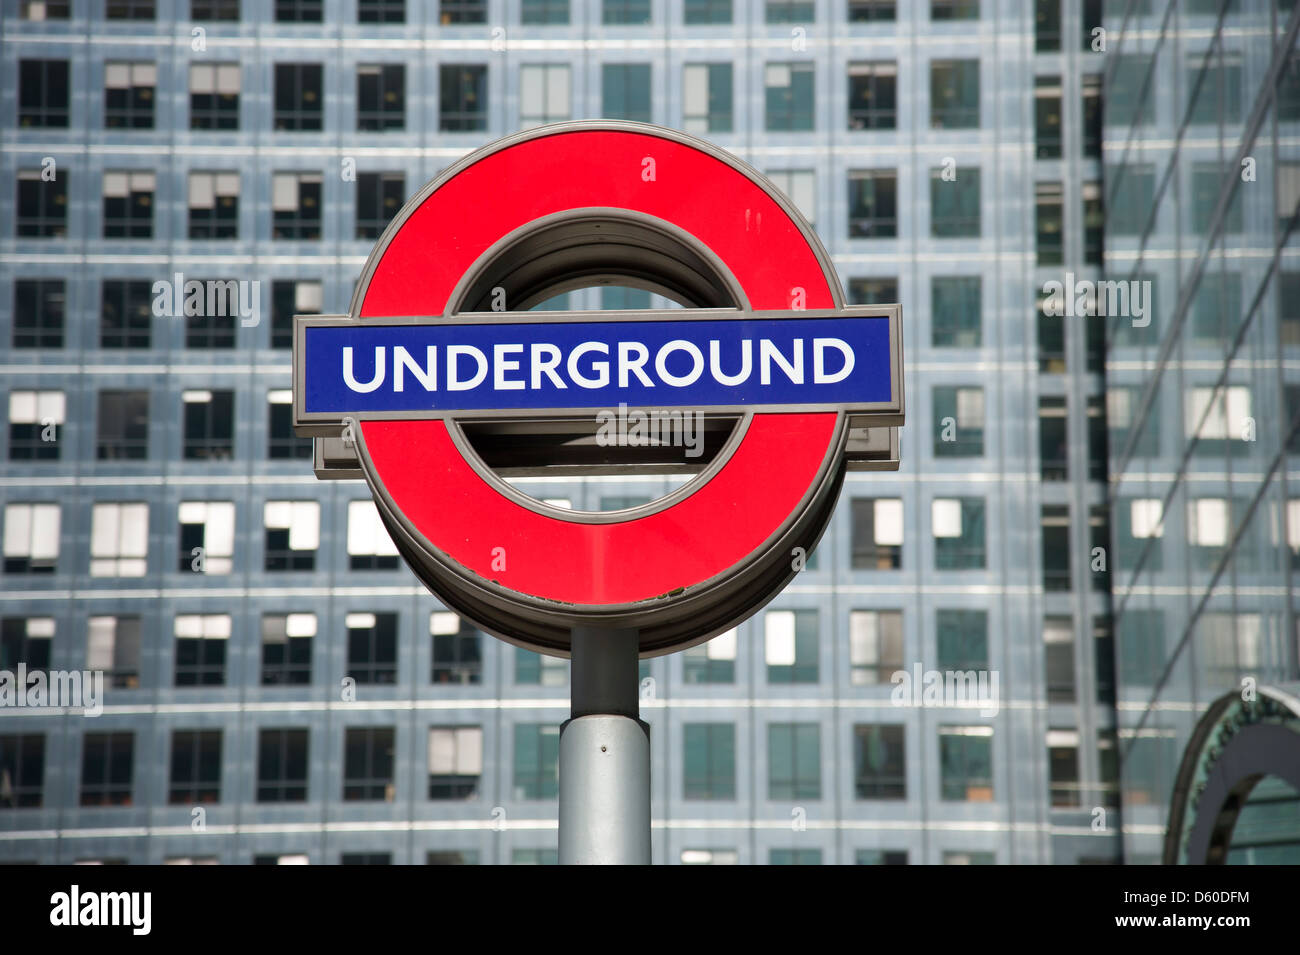 London Underground sign, UK Photo Stock